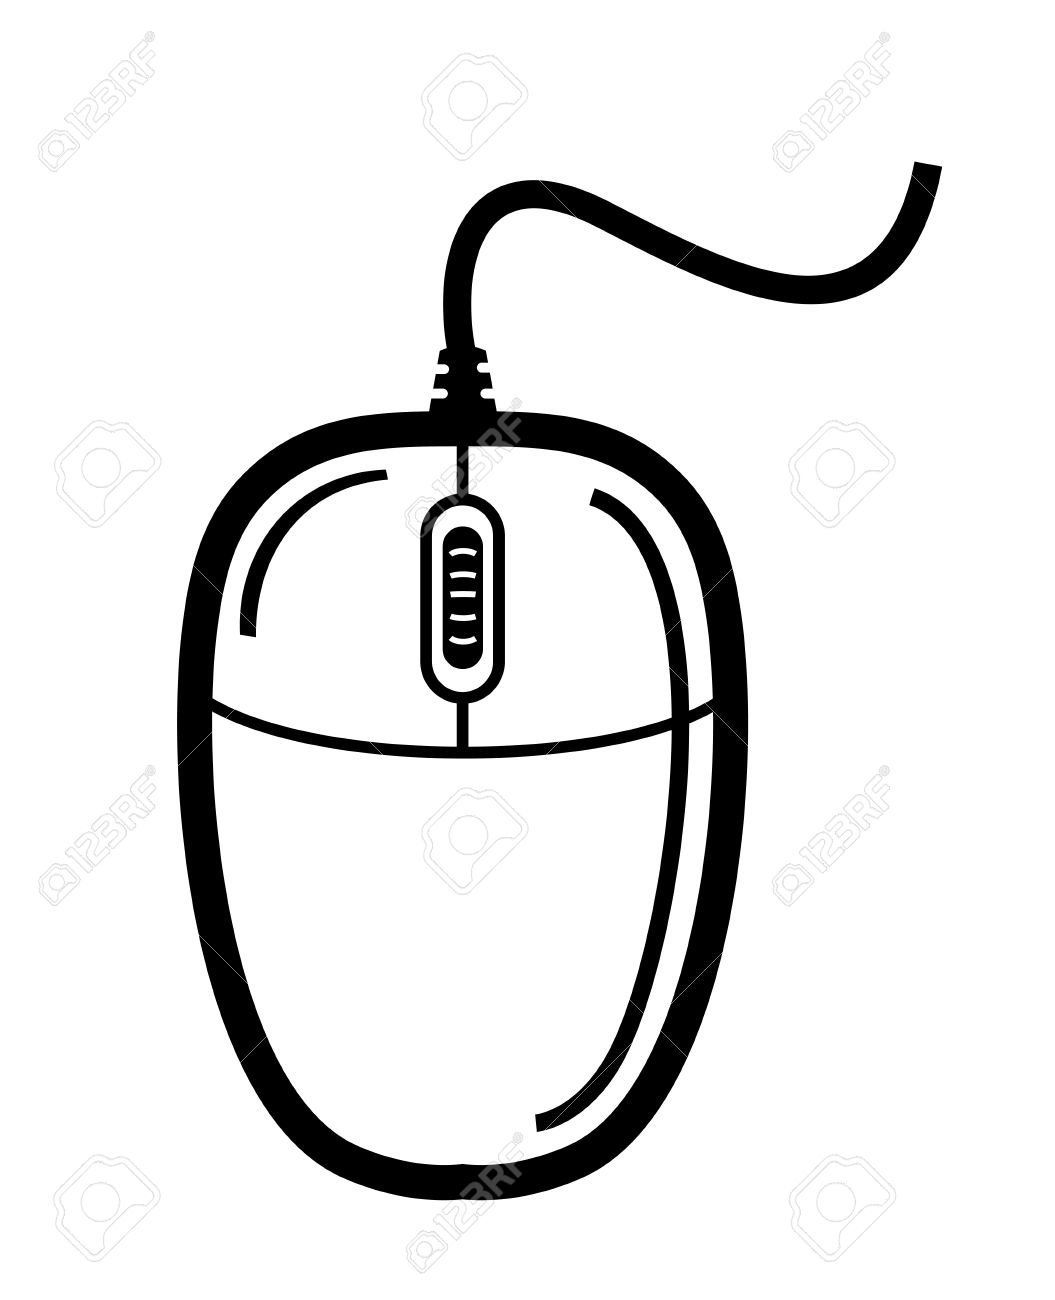 Computer Mouse Drawing At Getdrawings